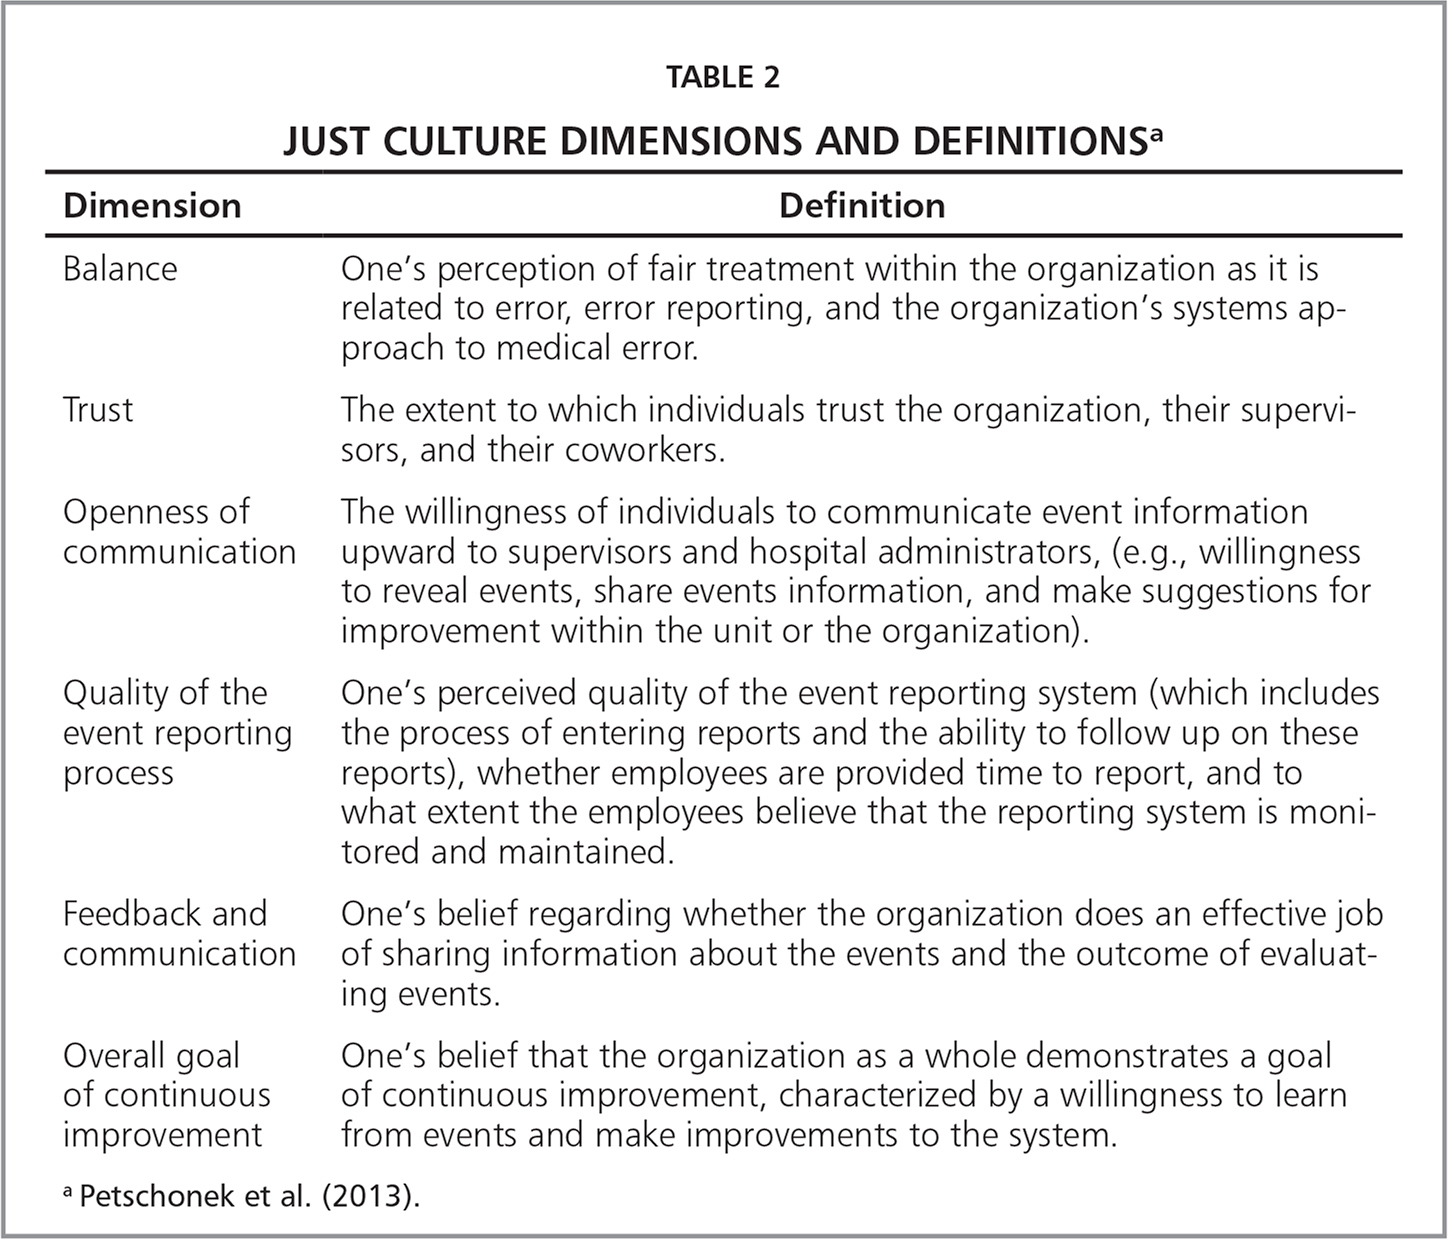 Just Culture Dimensions and Definitionsa